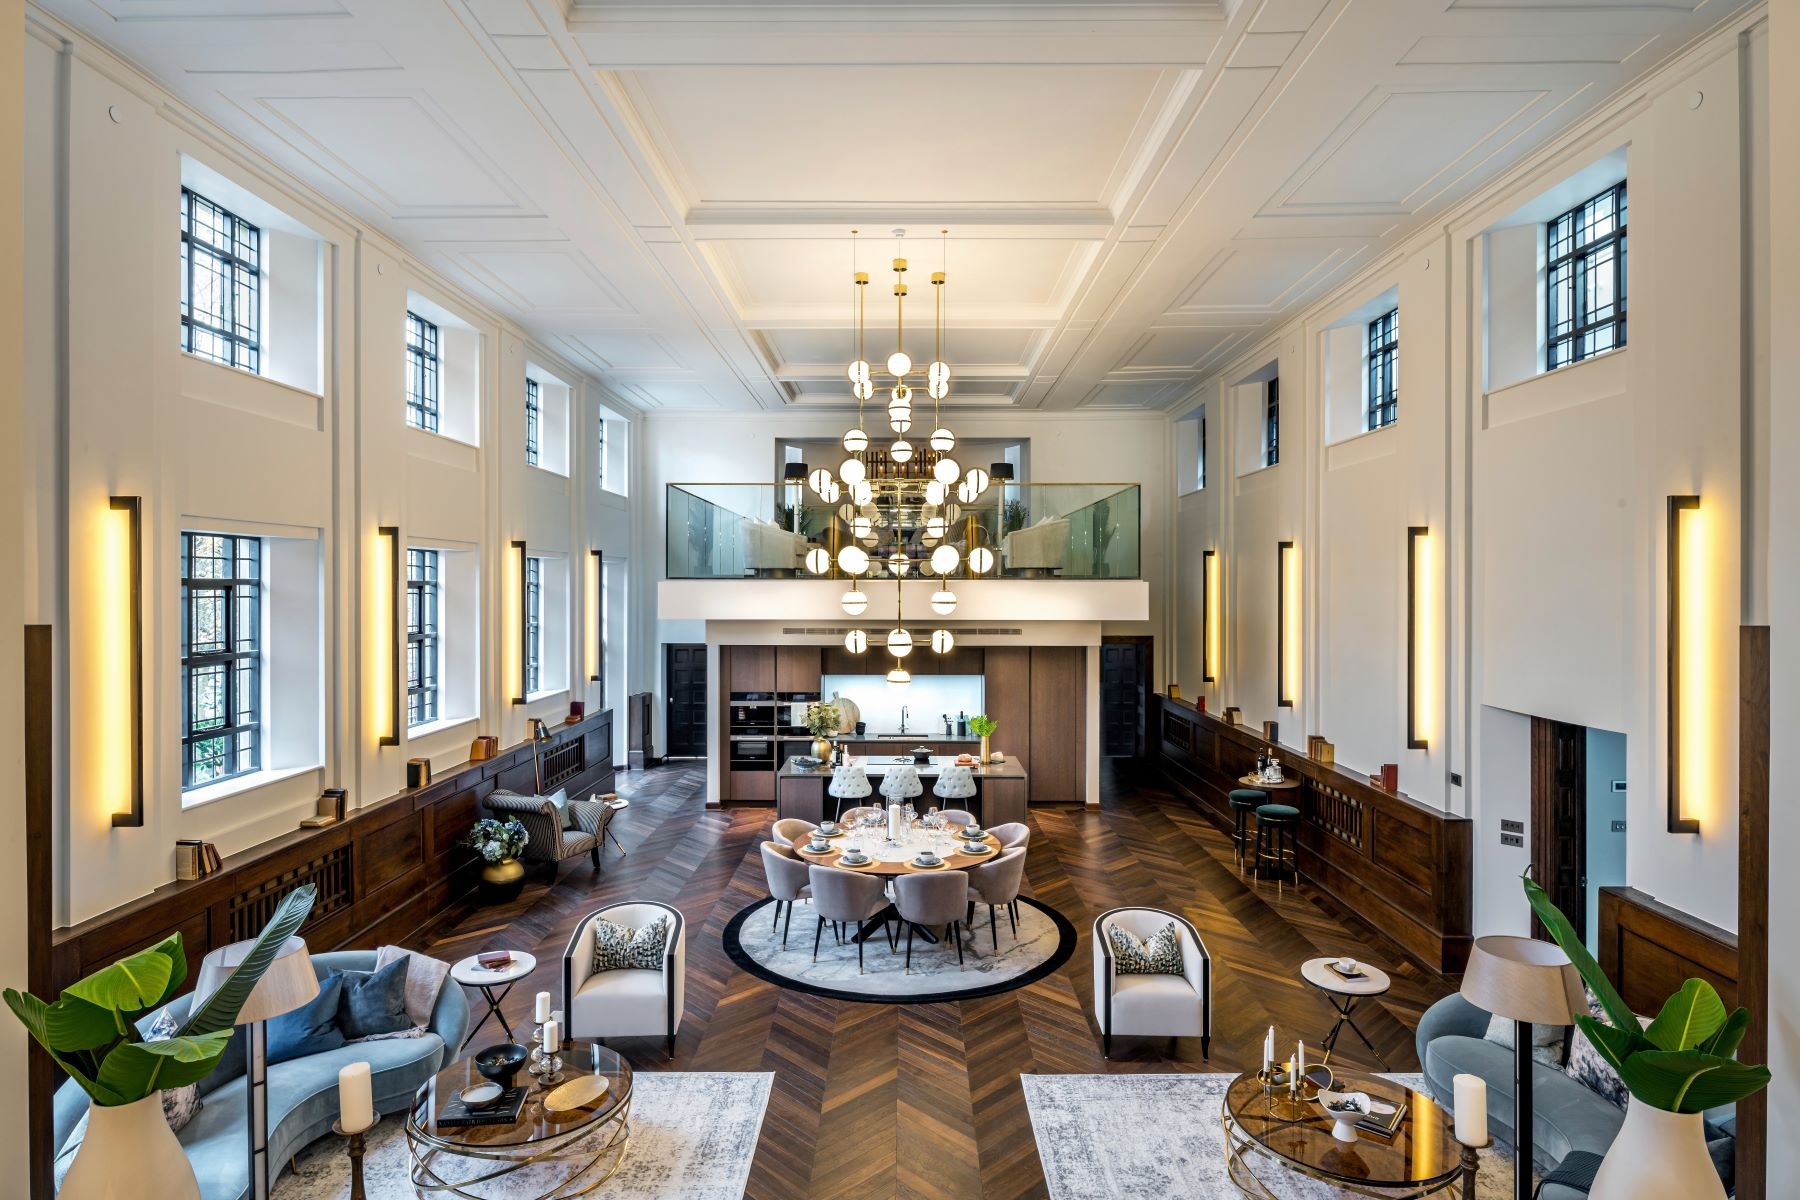 townhouses for Sale at The Chapel, Hampstead Manor London, England NW3 7ST United Kingdom